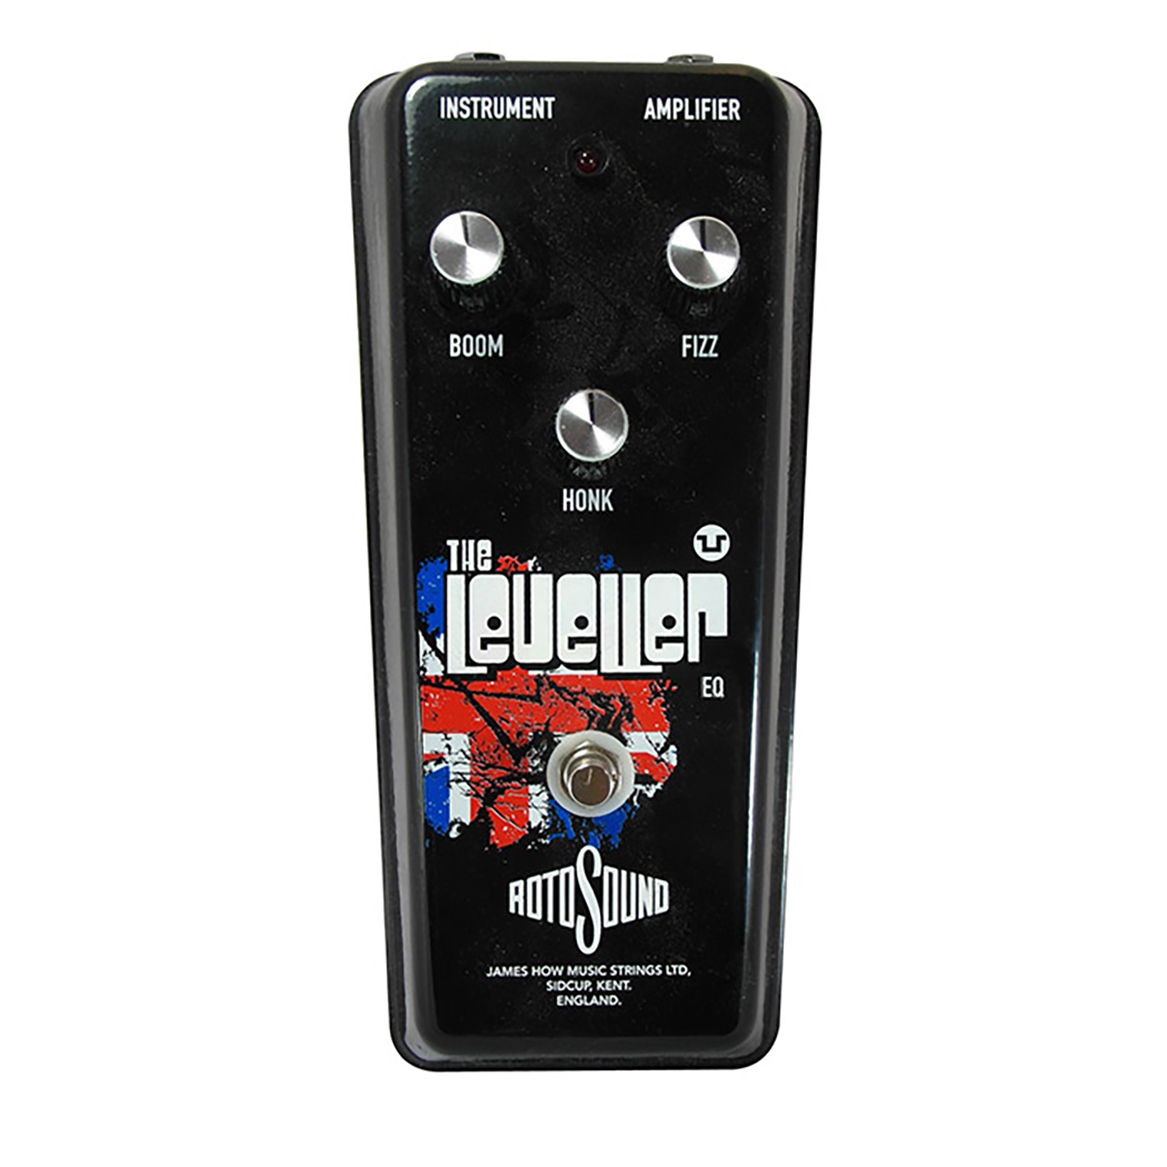 Rotosound Leveller EQ effects pedal